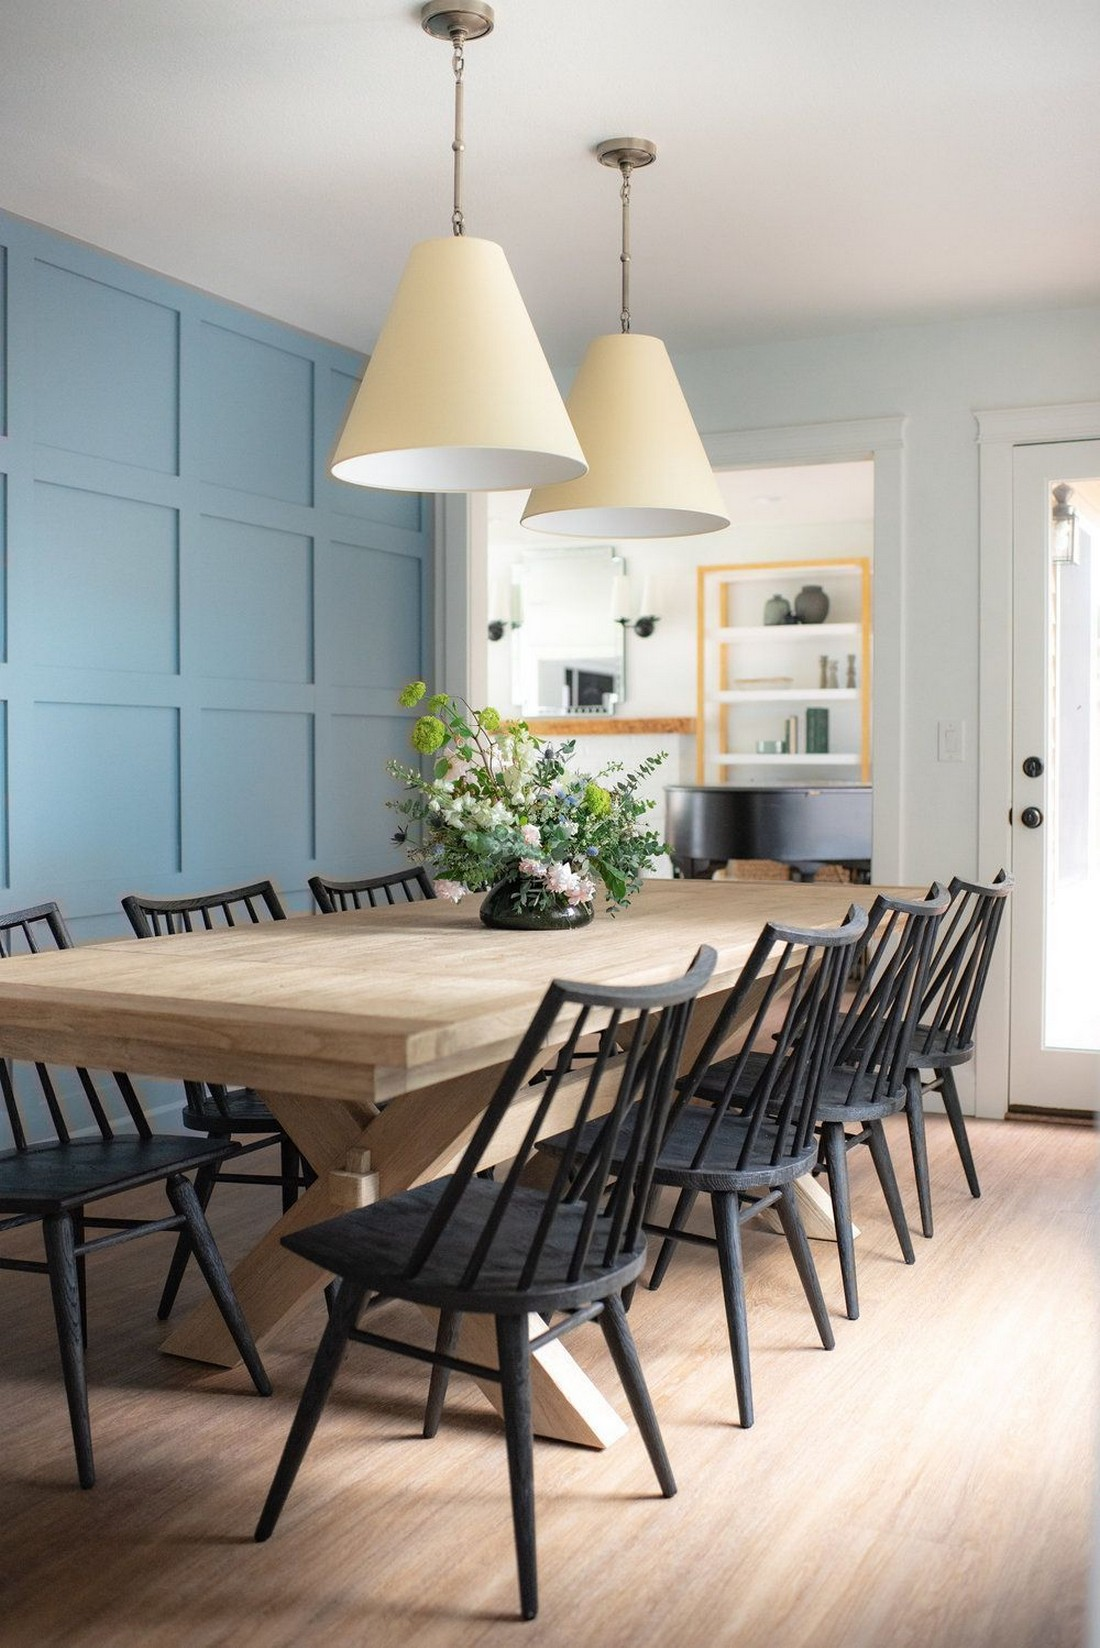 86 Different Types Of Dining Chairs Home Decor 18